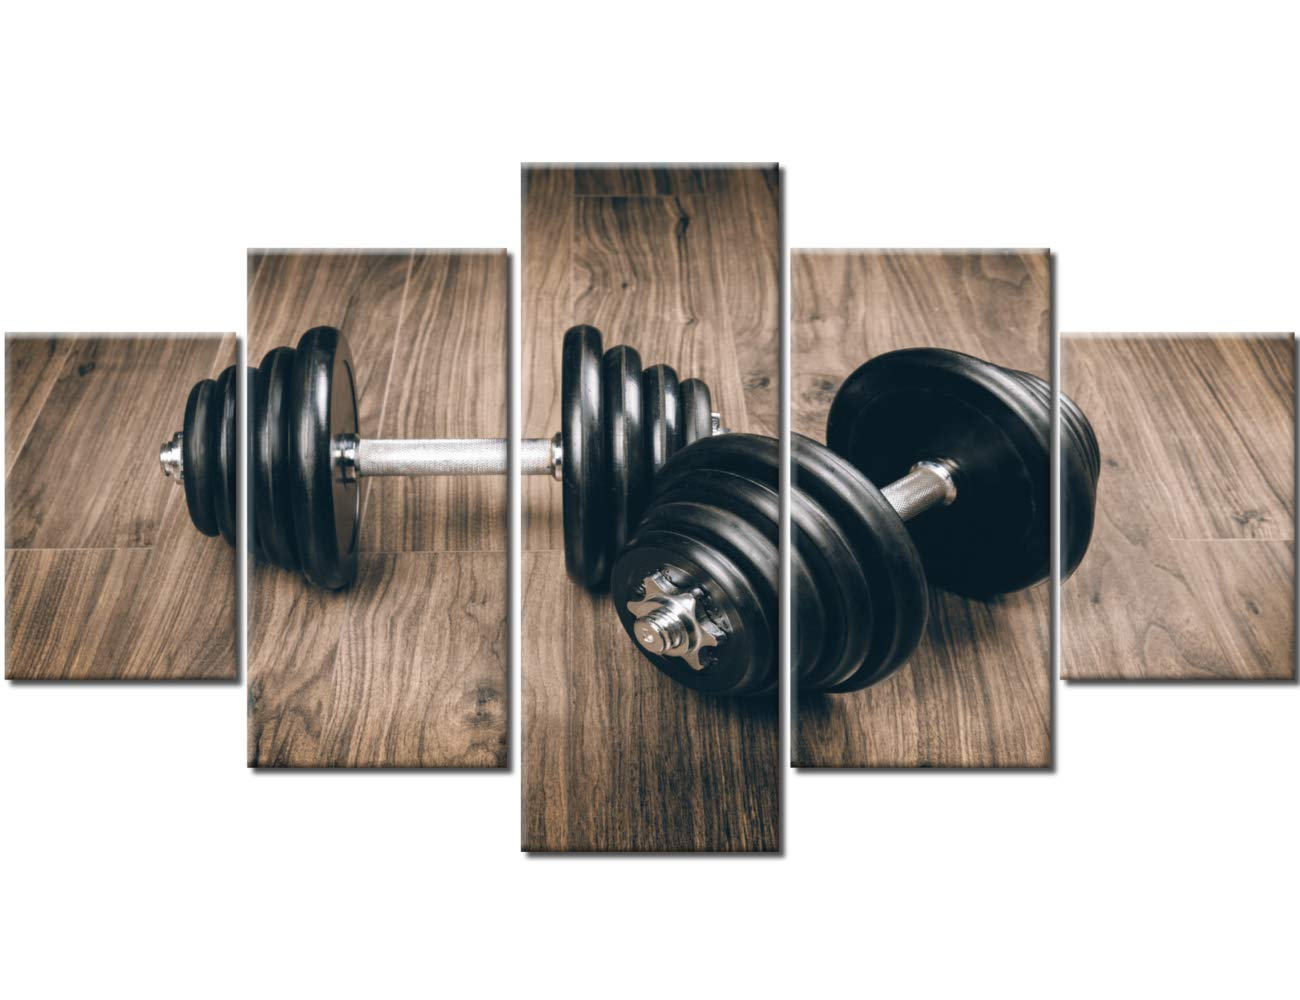 Amazon sports wall decor pictures for living room dumbbells